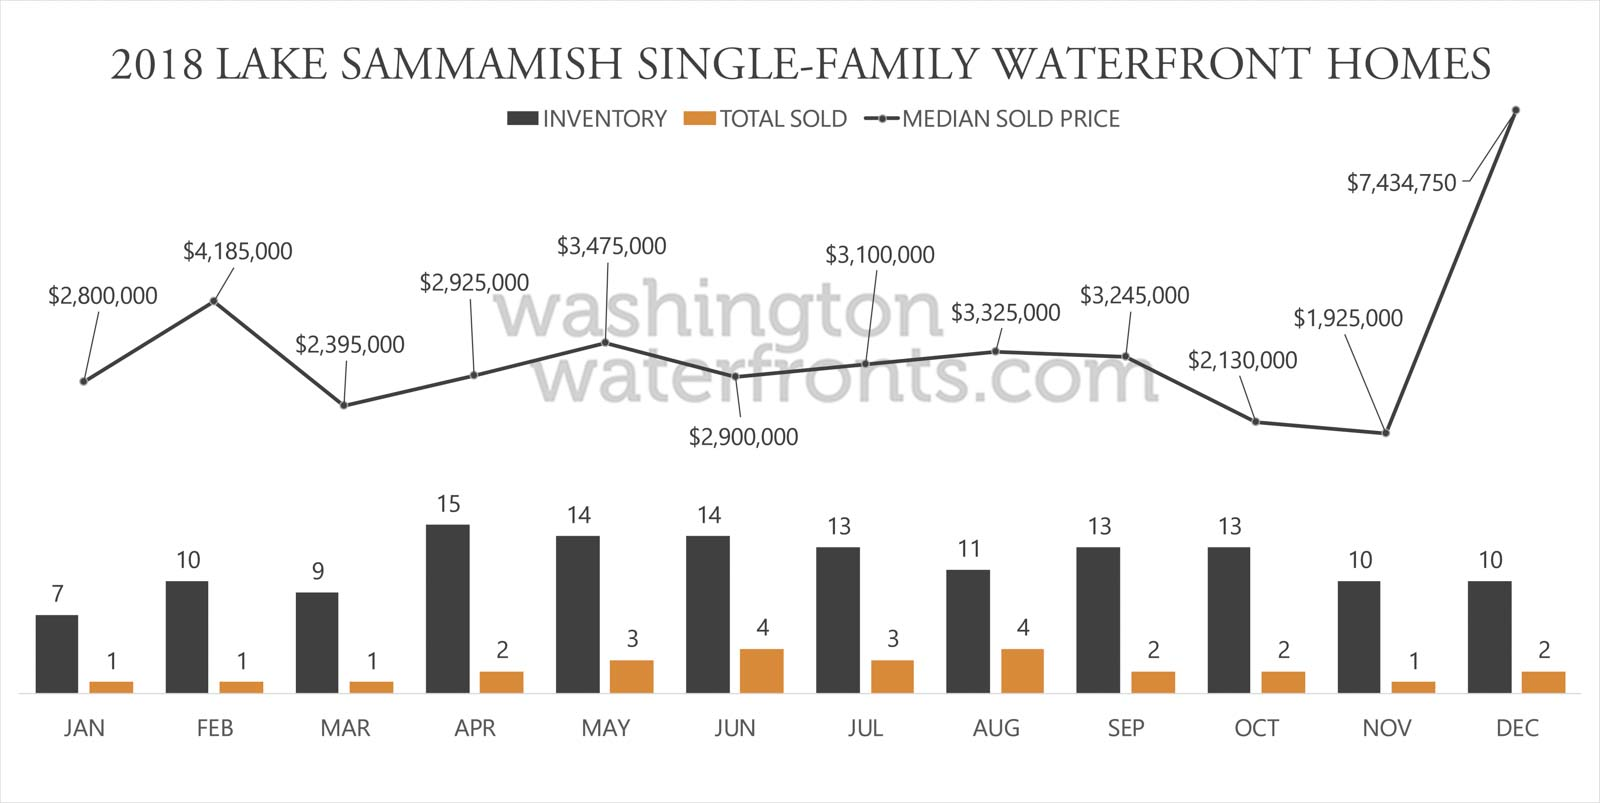 Lake Sammamish Waterfront Inventory